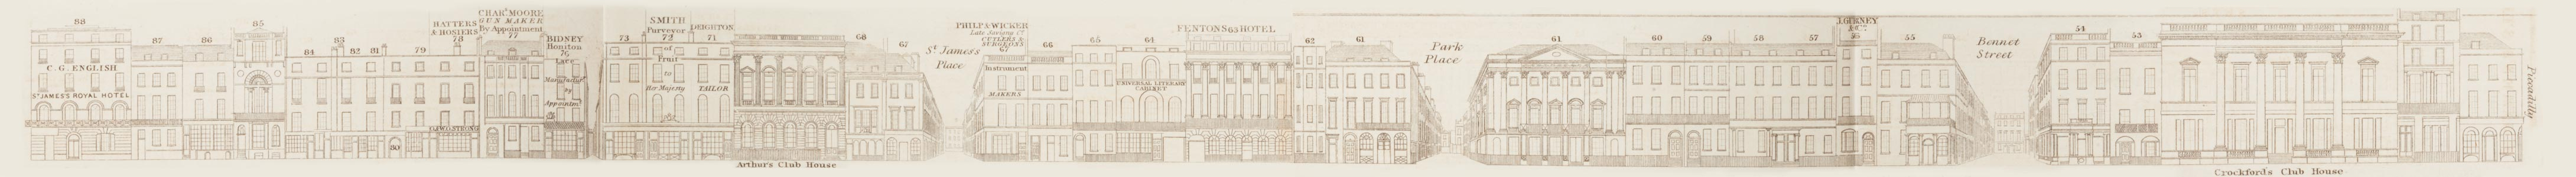 map - Tallis's London street views : No. 14. St. James's Street (west)